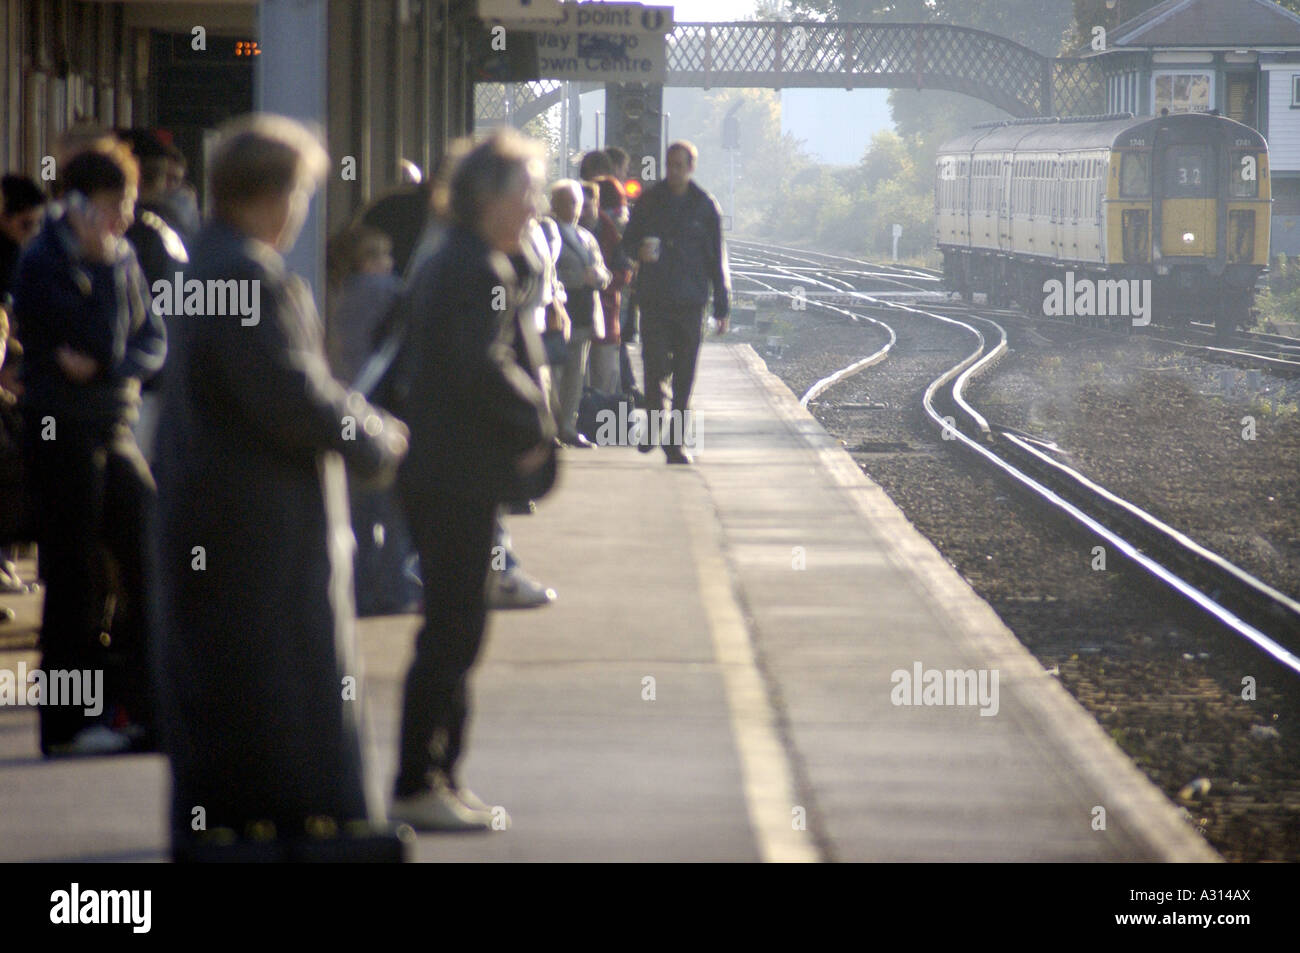 commuters train platform people daily journey work - Stock Image